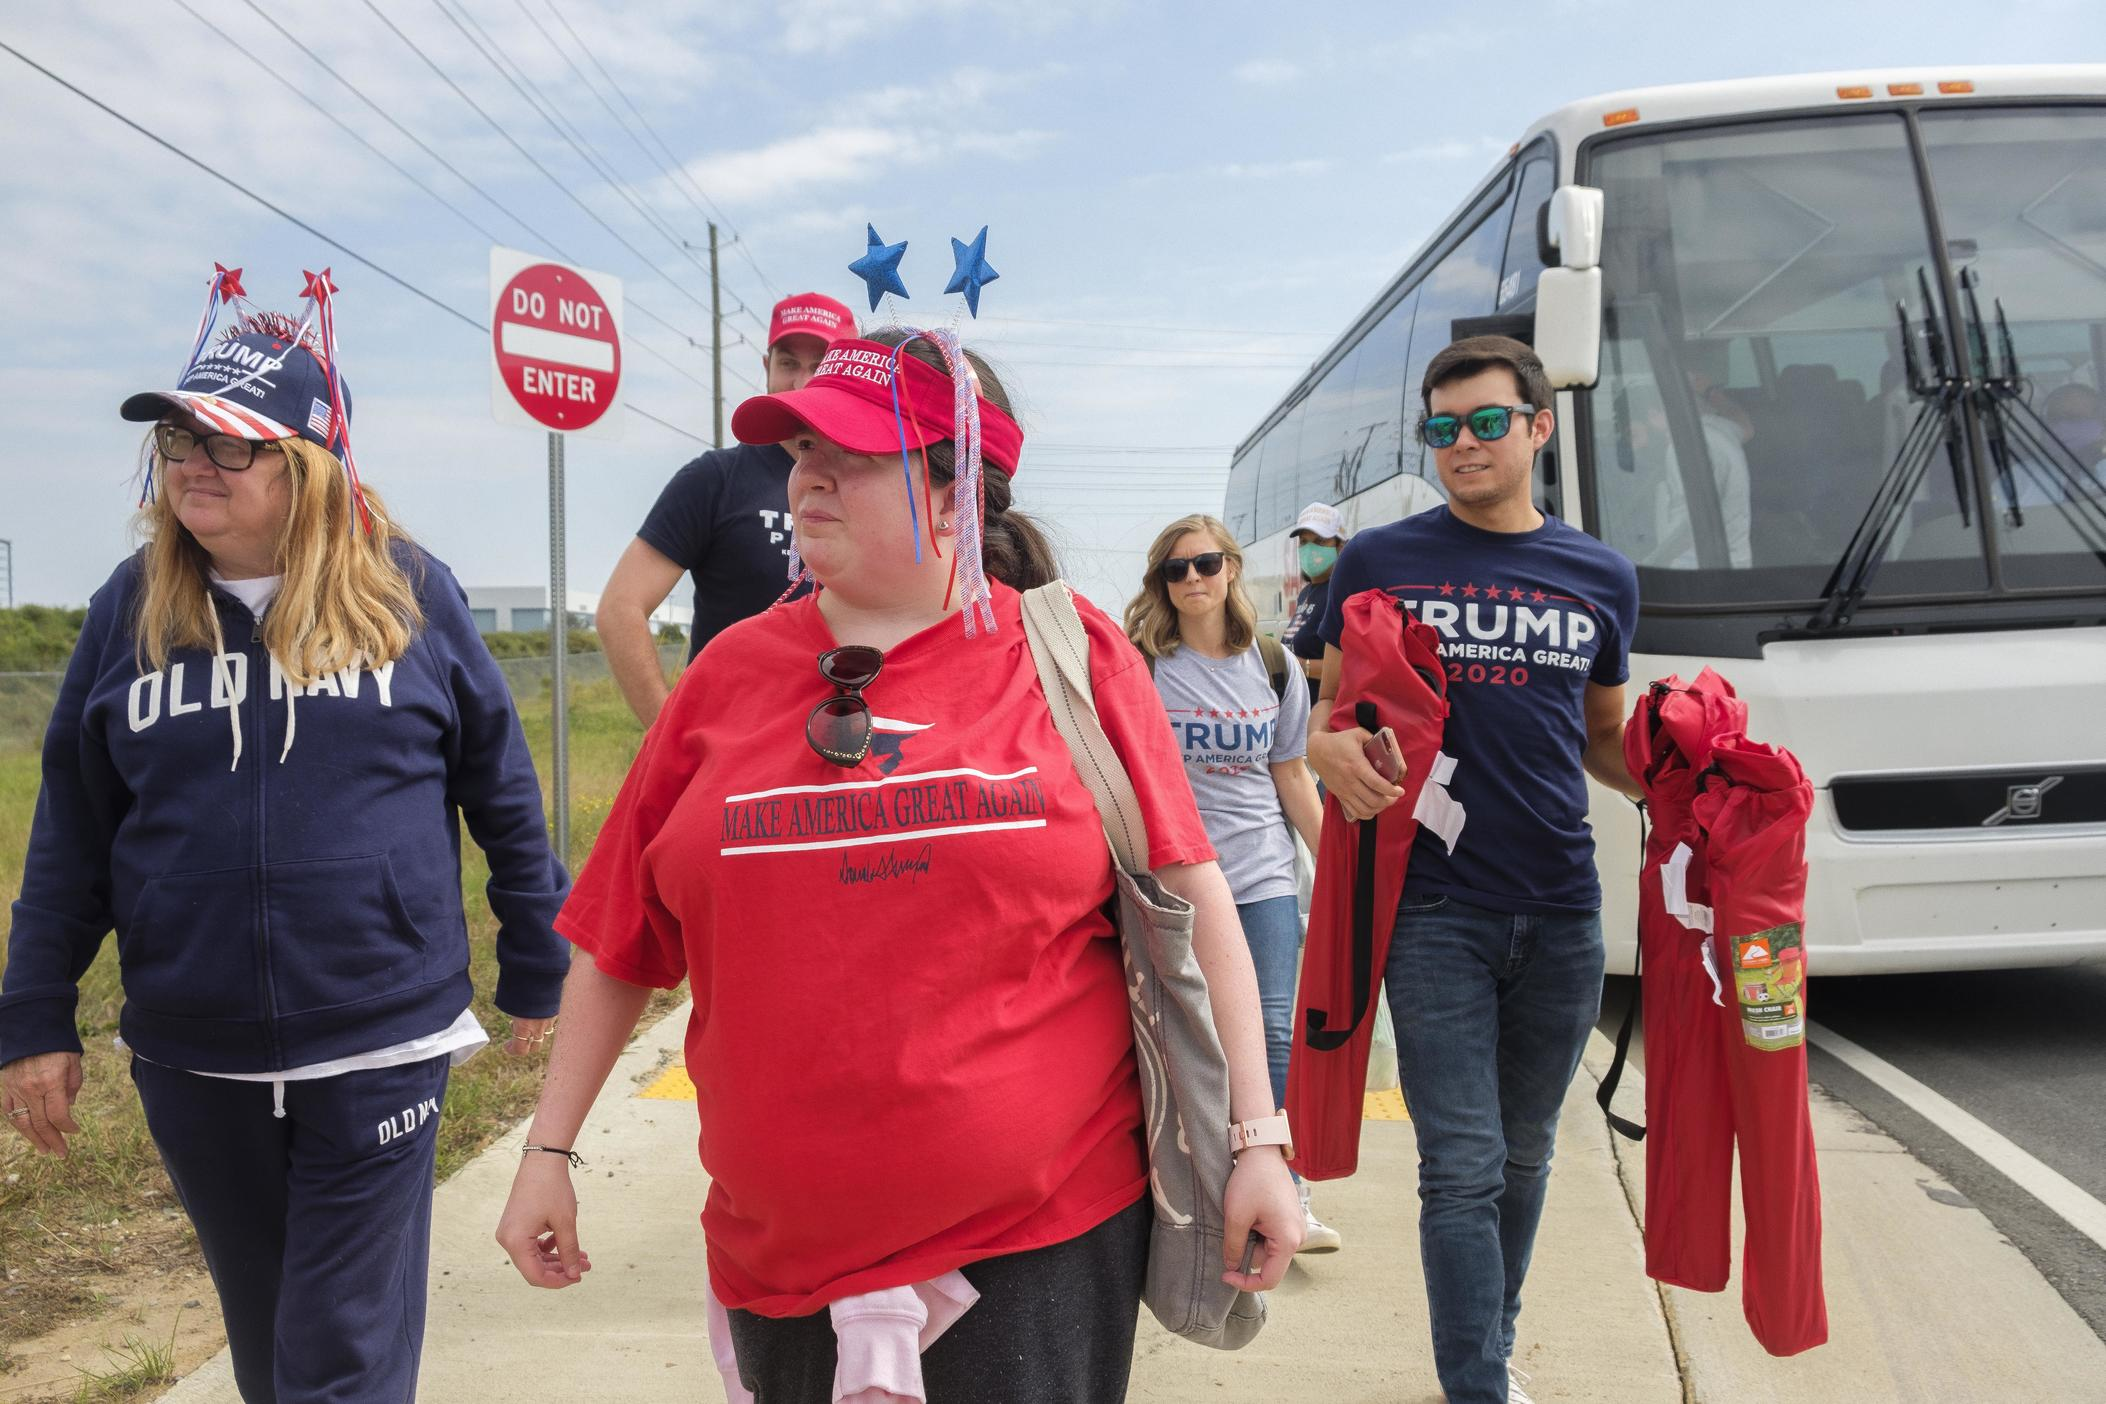 Trump supporters head into the mask-mandatory rally at the Middle Georgia Regional Airport on Friday afternoon, Oct. 16, 2020.